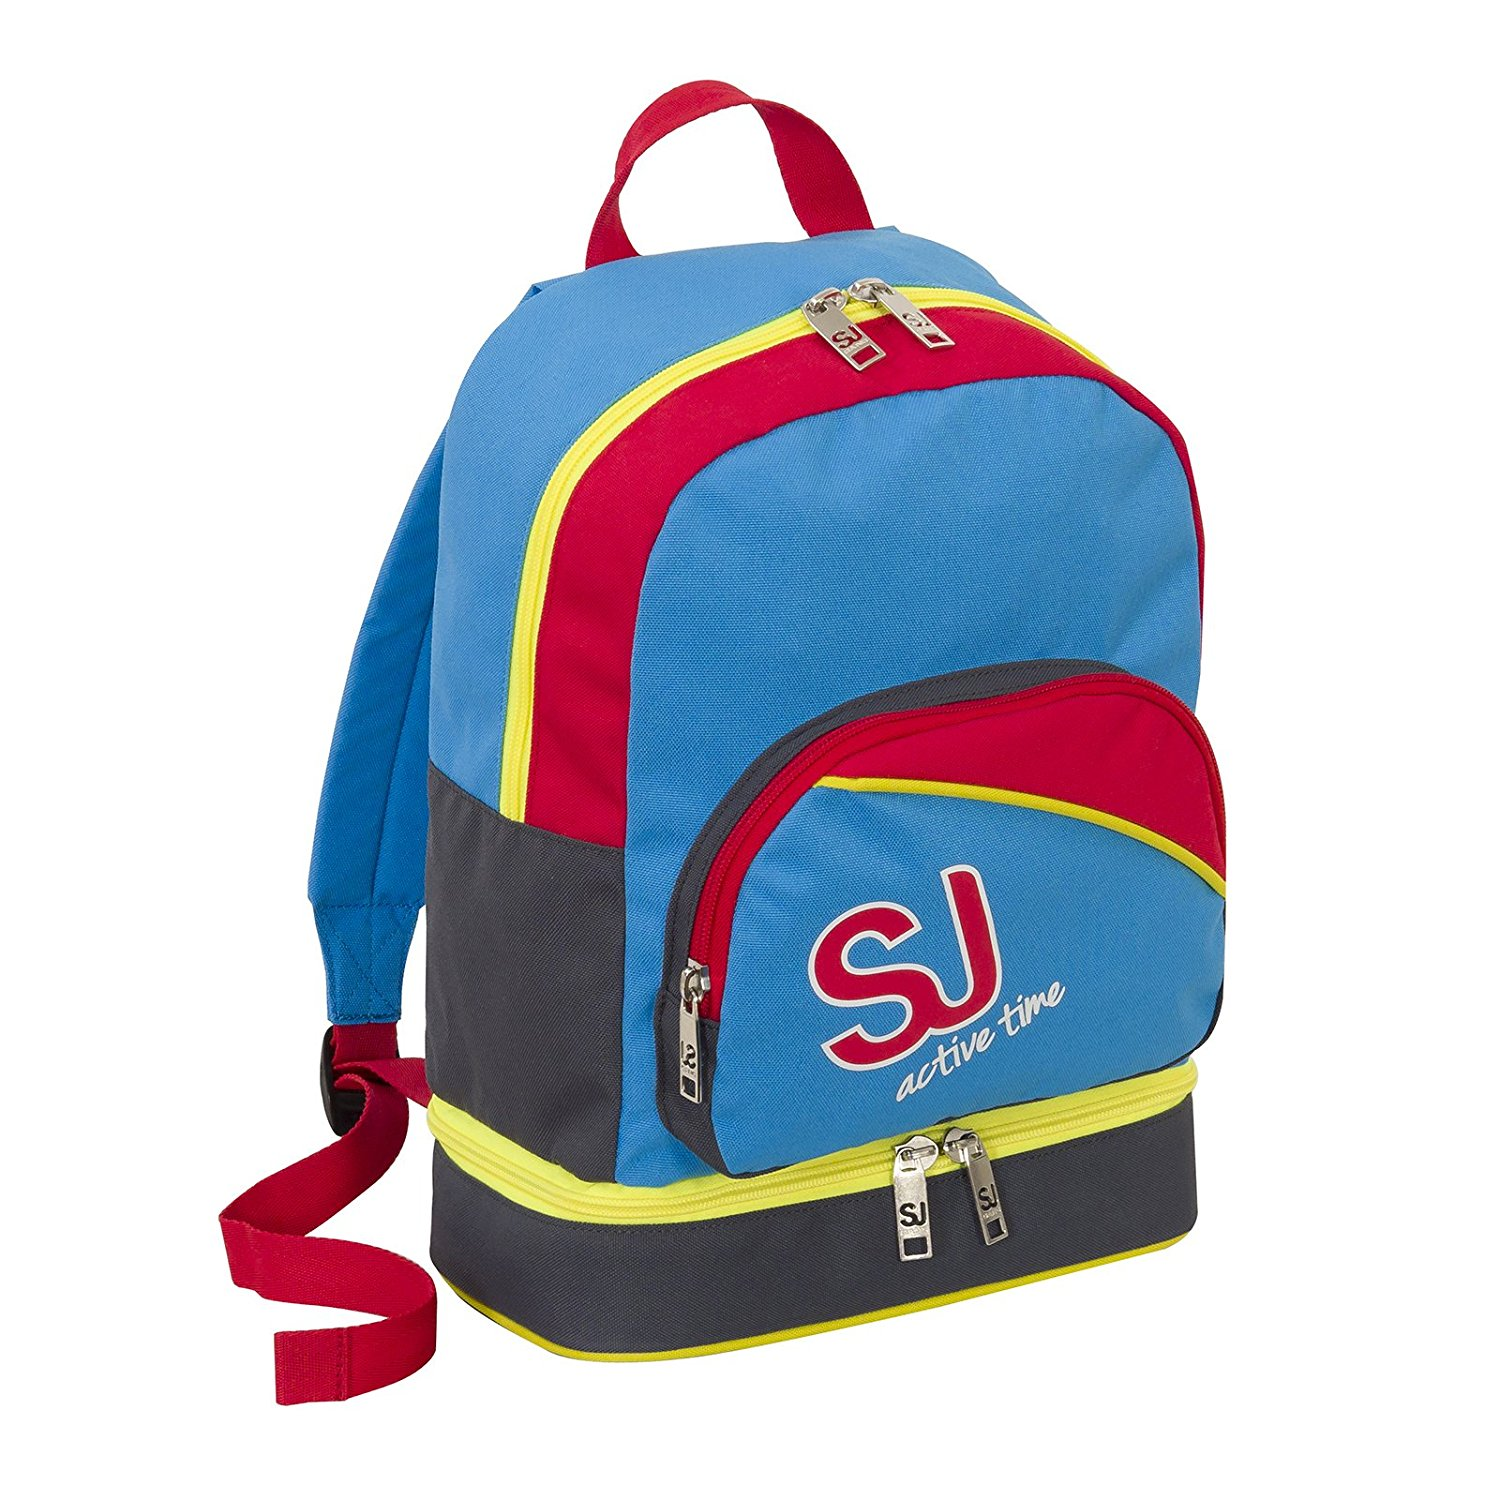 Zainetto Con Portavivande TERMICO SEVEN SJ Active Lunch Backpack - Azzurro